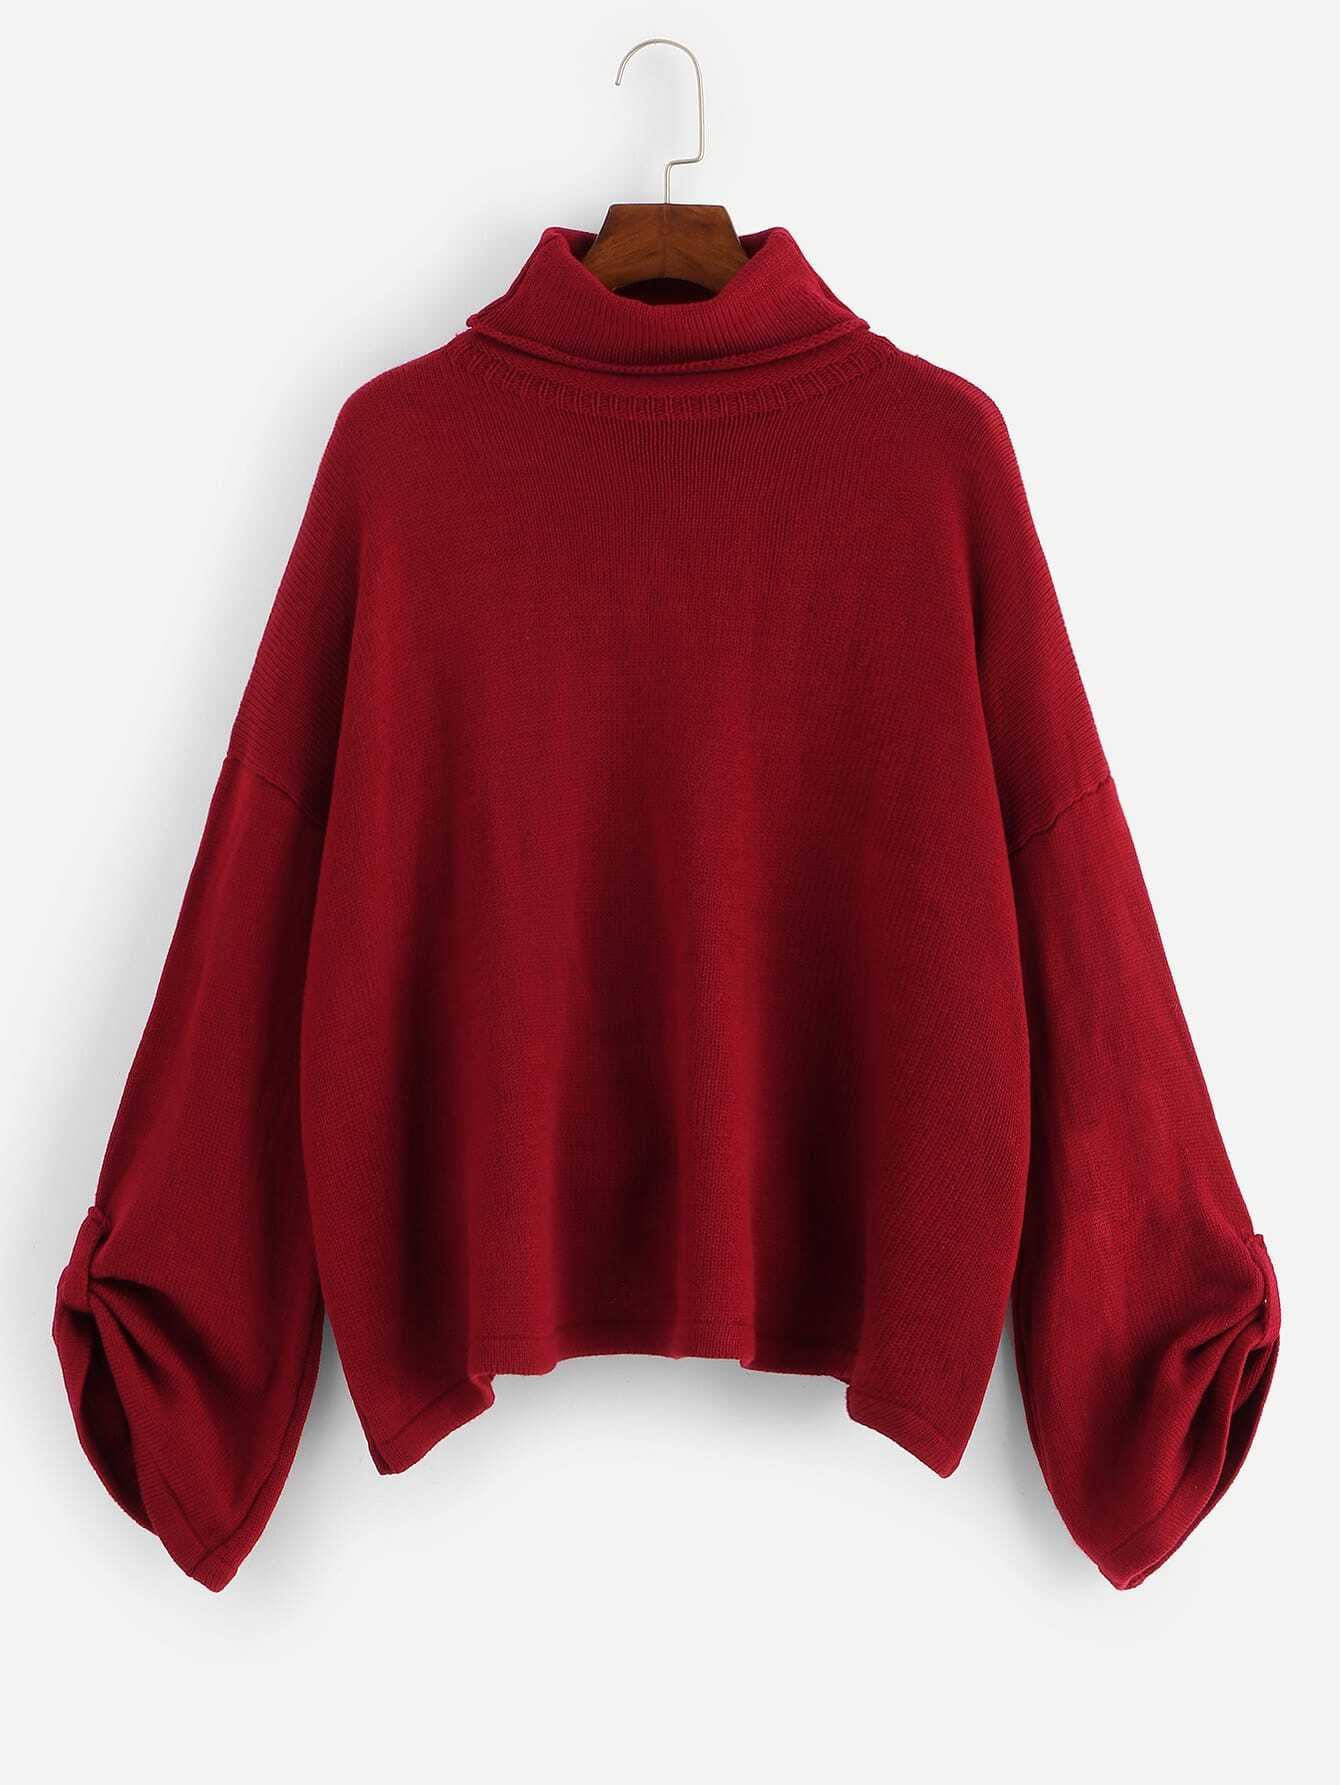 Turtle Neck Rolled Tab Sleeve Sweater Turtle Neck Rolled Tab Sleeve Sweater